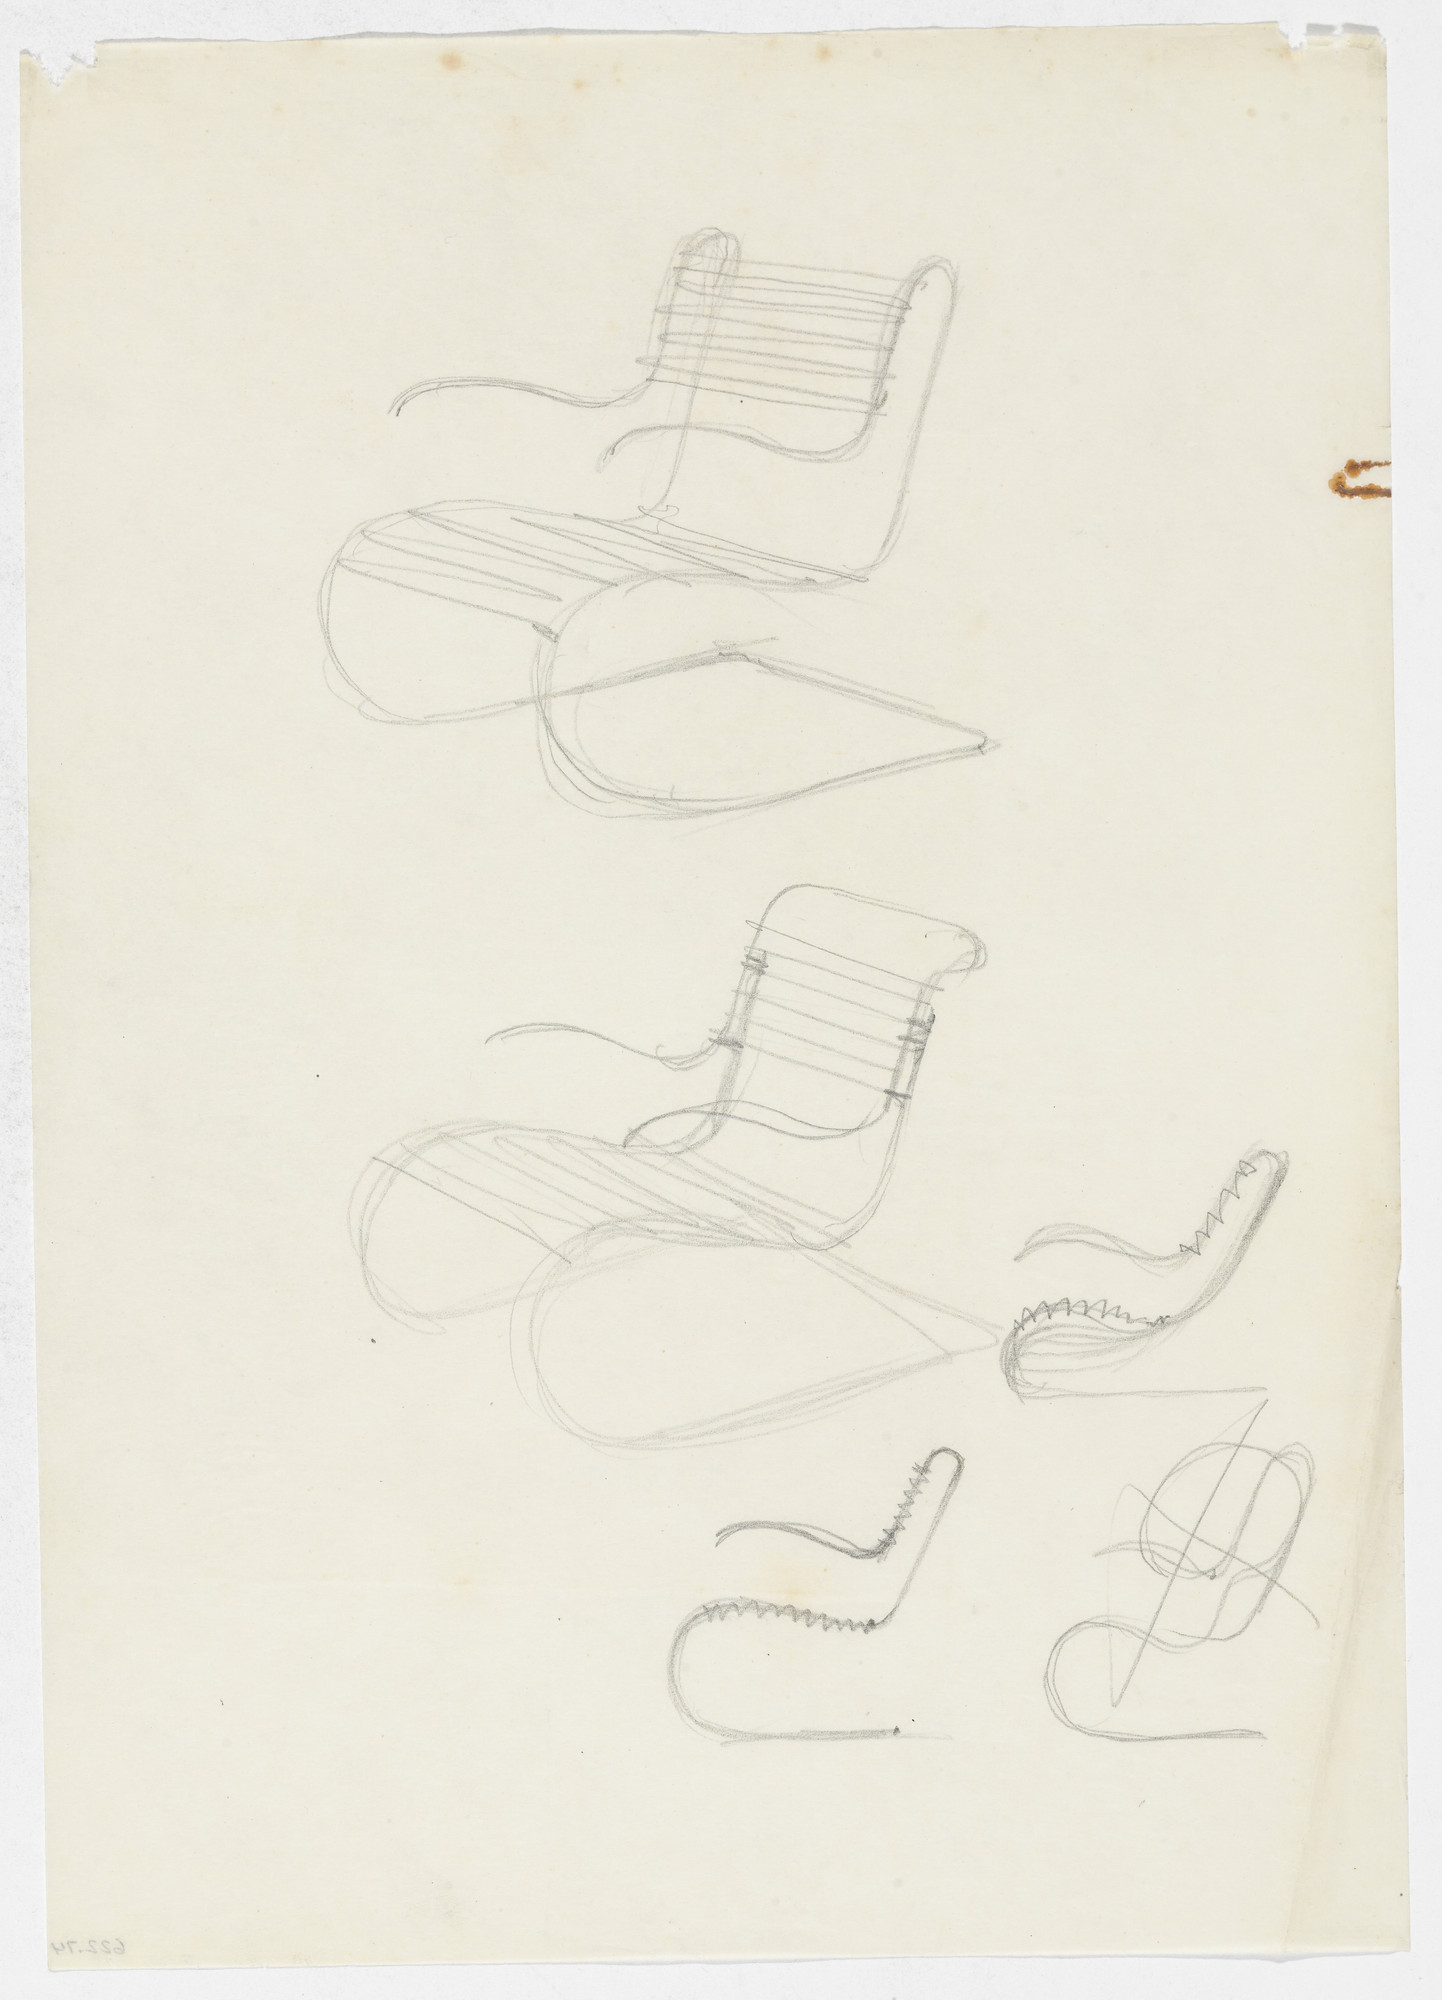 Ludwig Mies van der Rohe. Lounge Chair with Arms (Two perspective sketches, three elevation sketches). early 1930s